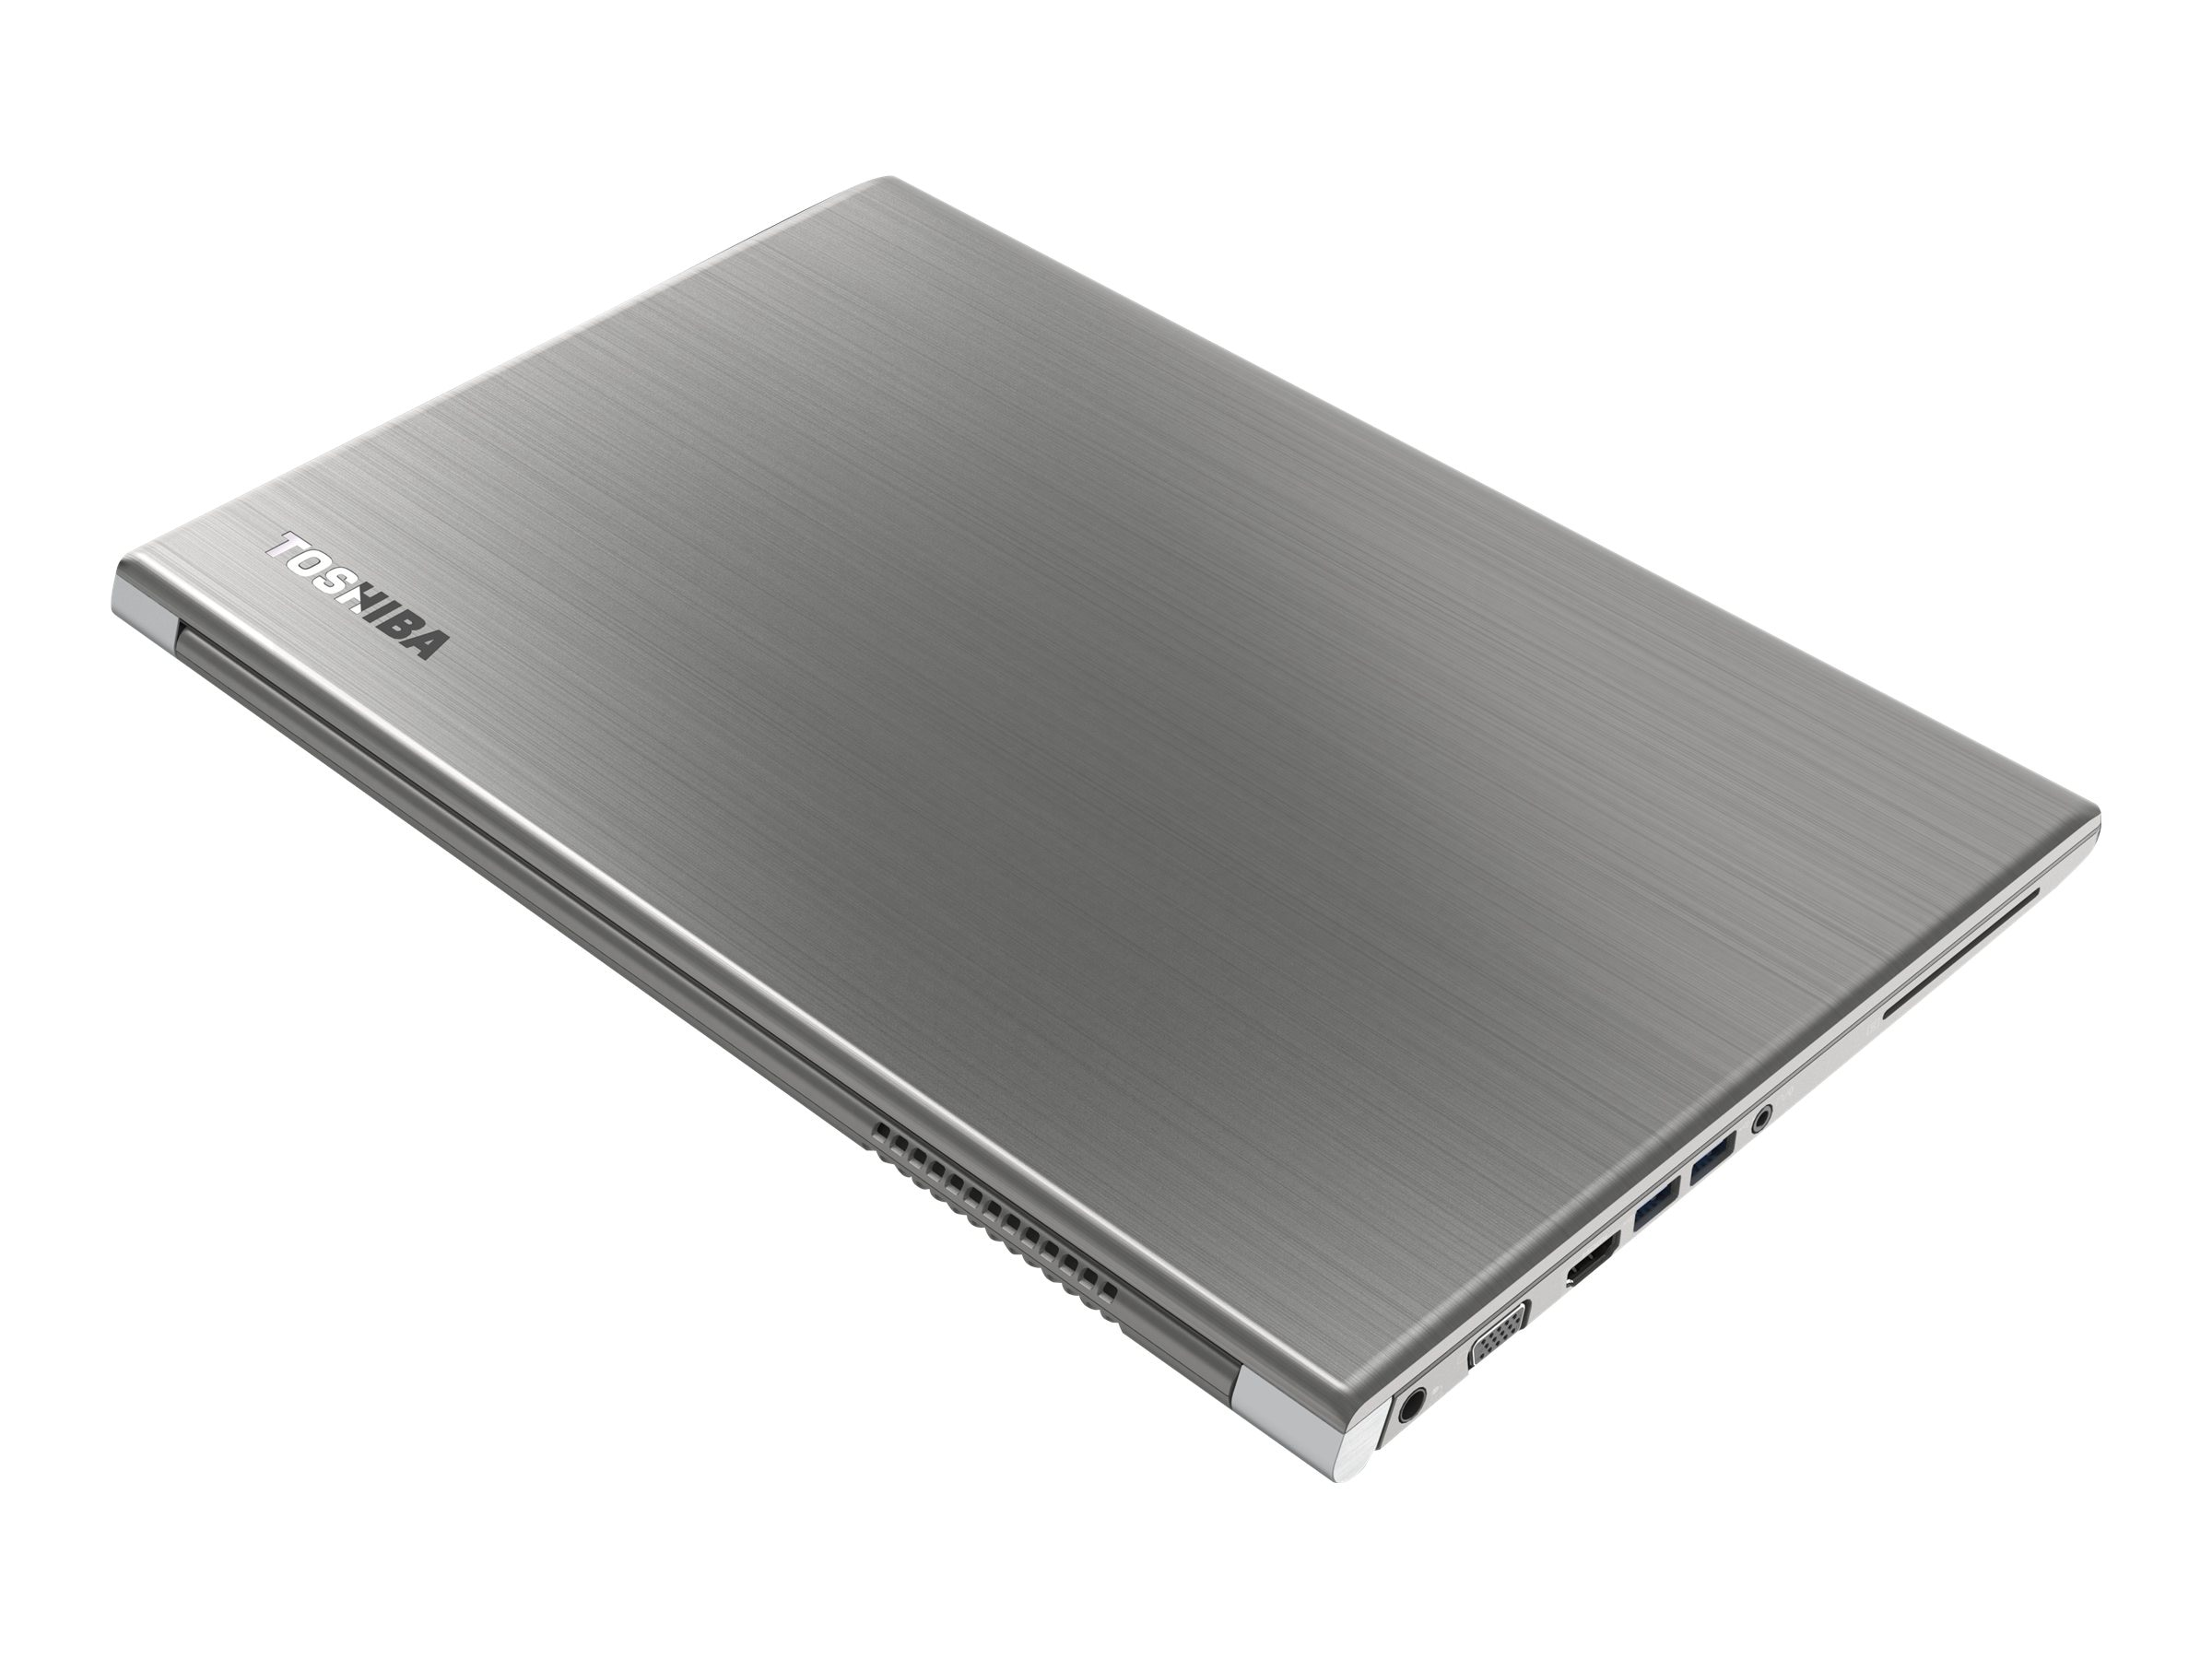 Toshiba Tecra Z50-A1502 2.1GHz Core i7 15.6in display, PT545U-00Q004, 16534111, Notebooks